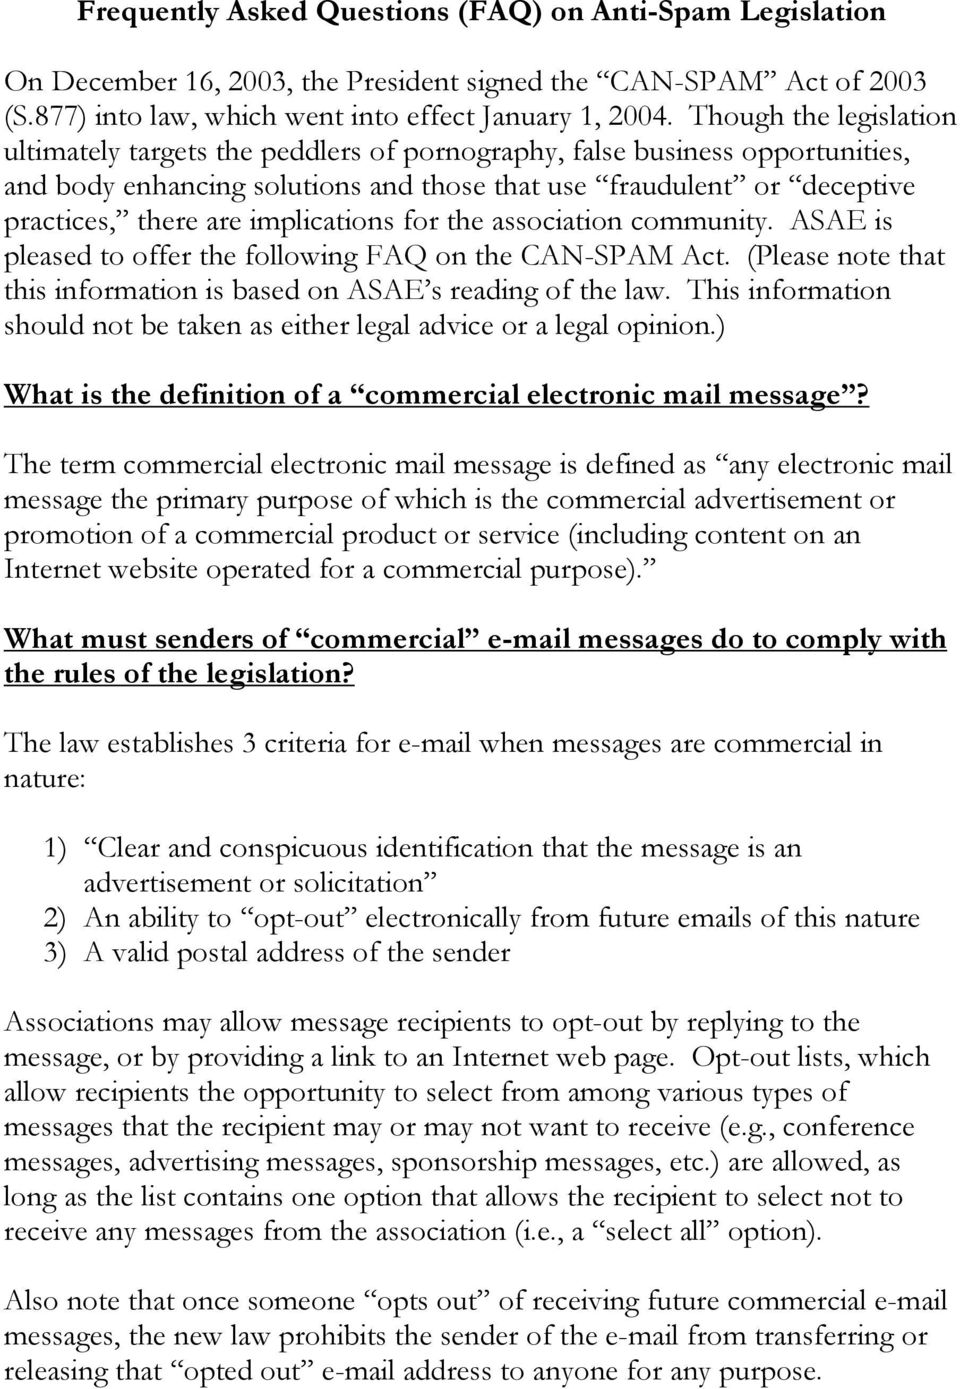 implications for the association community. ASAE is pleased to offer the following FAQ on the CAN-SPAM Act. (Please note that this information is based on ASAE s reading of the law.